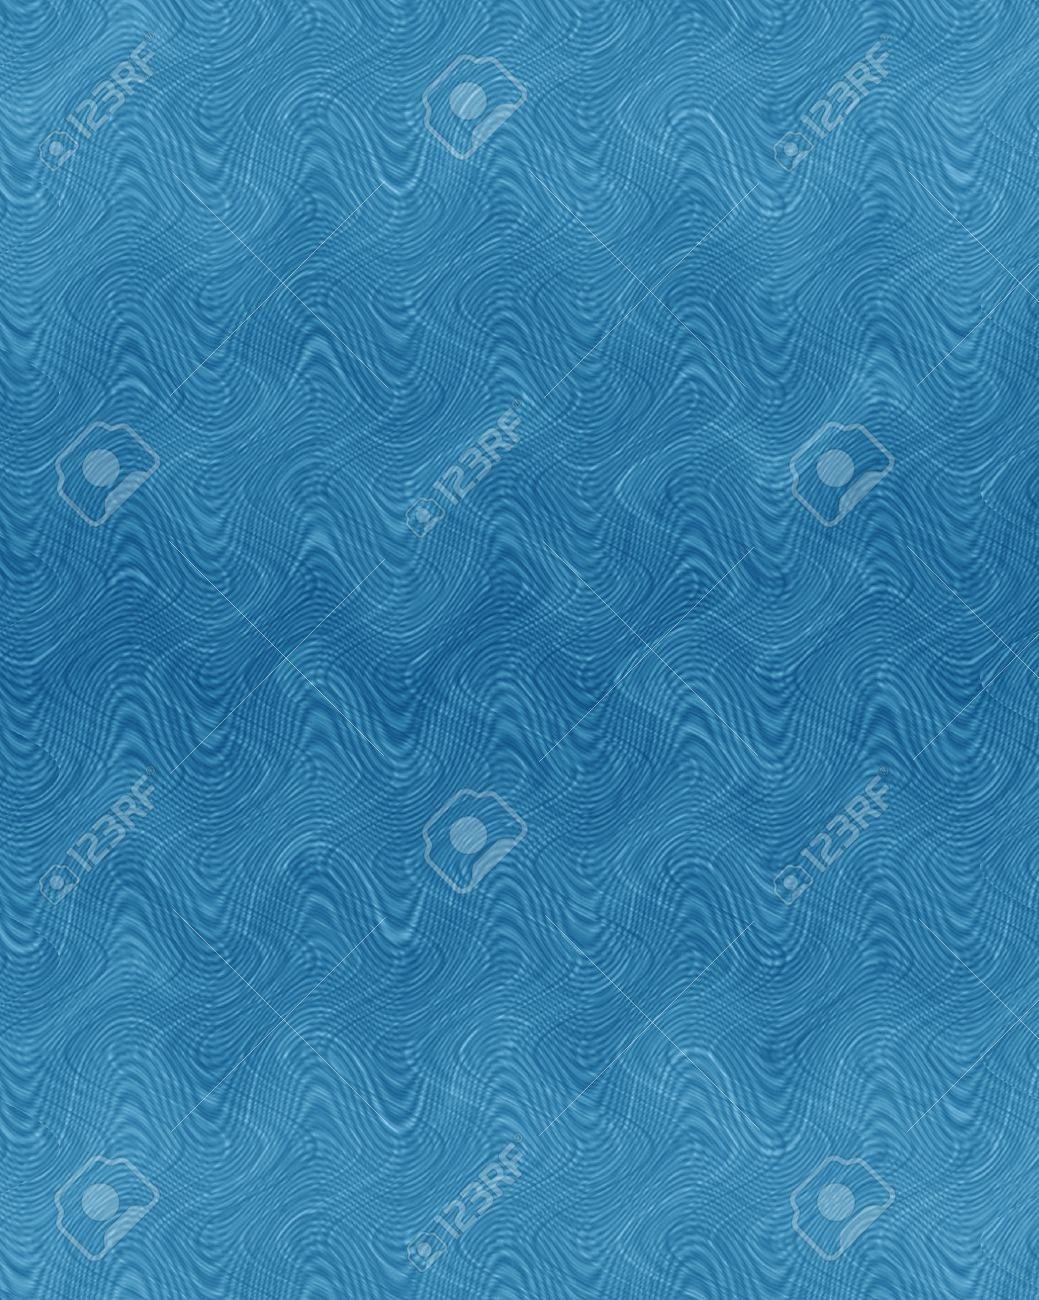 Blue fabric texture wave style Stock Photo - 11124068